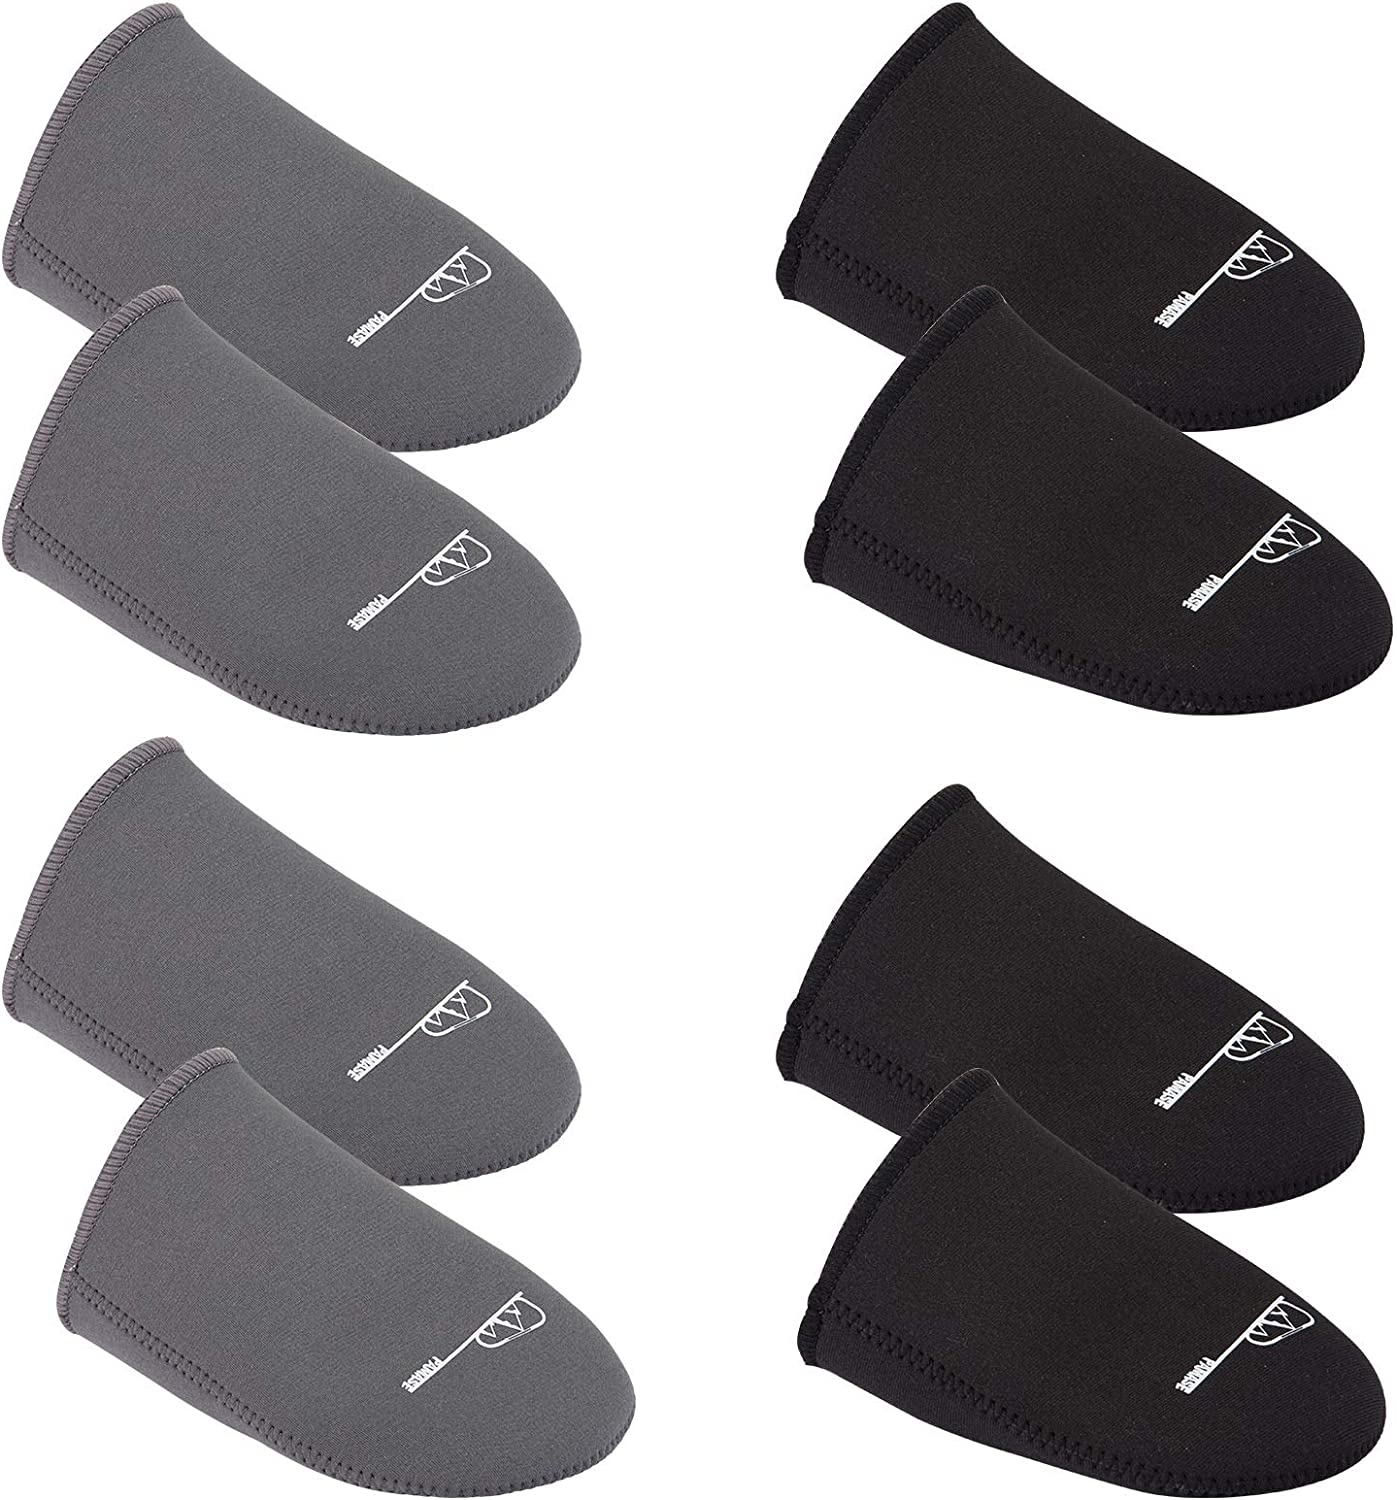 PAMASE 4 Pairs Neoprene Toe Warmer- Black and Gray Neoprene Toe Covers Thermal Insulation Toe Warmers Wear Inside Shoes Boots for Winter Outdoor Sports Cycling Camping Hiking (S/M/L/XL)